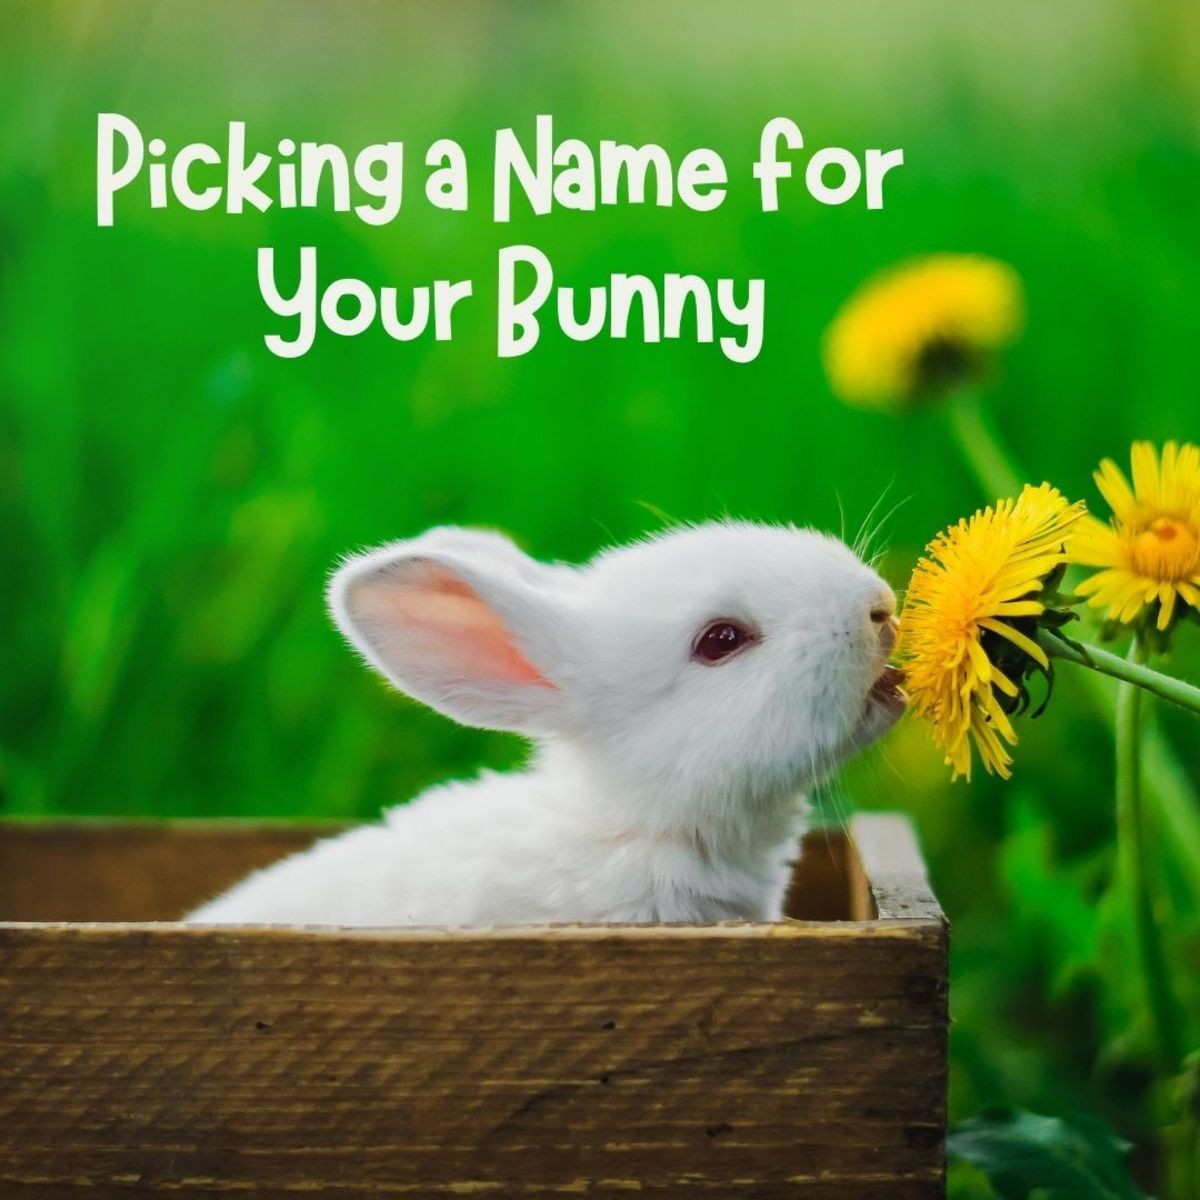 Cottontail, Flopsy, Peter, or Whiskers? Choosing a name for your bunny can be a challenge—here are some ideas to inspire you!